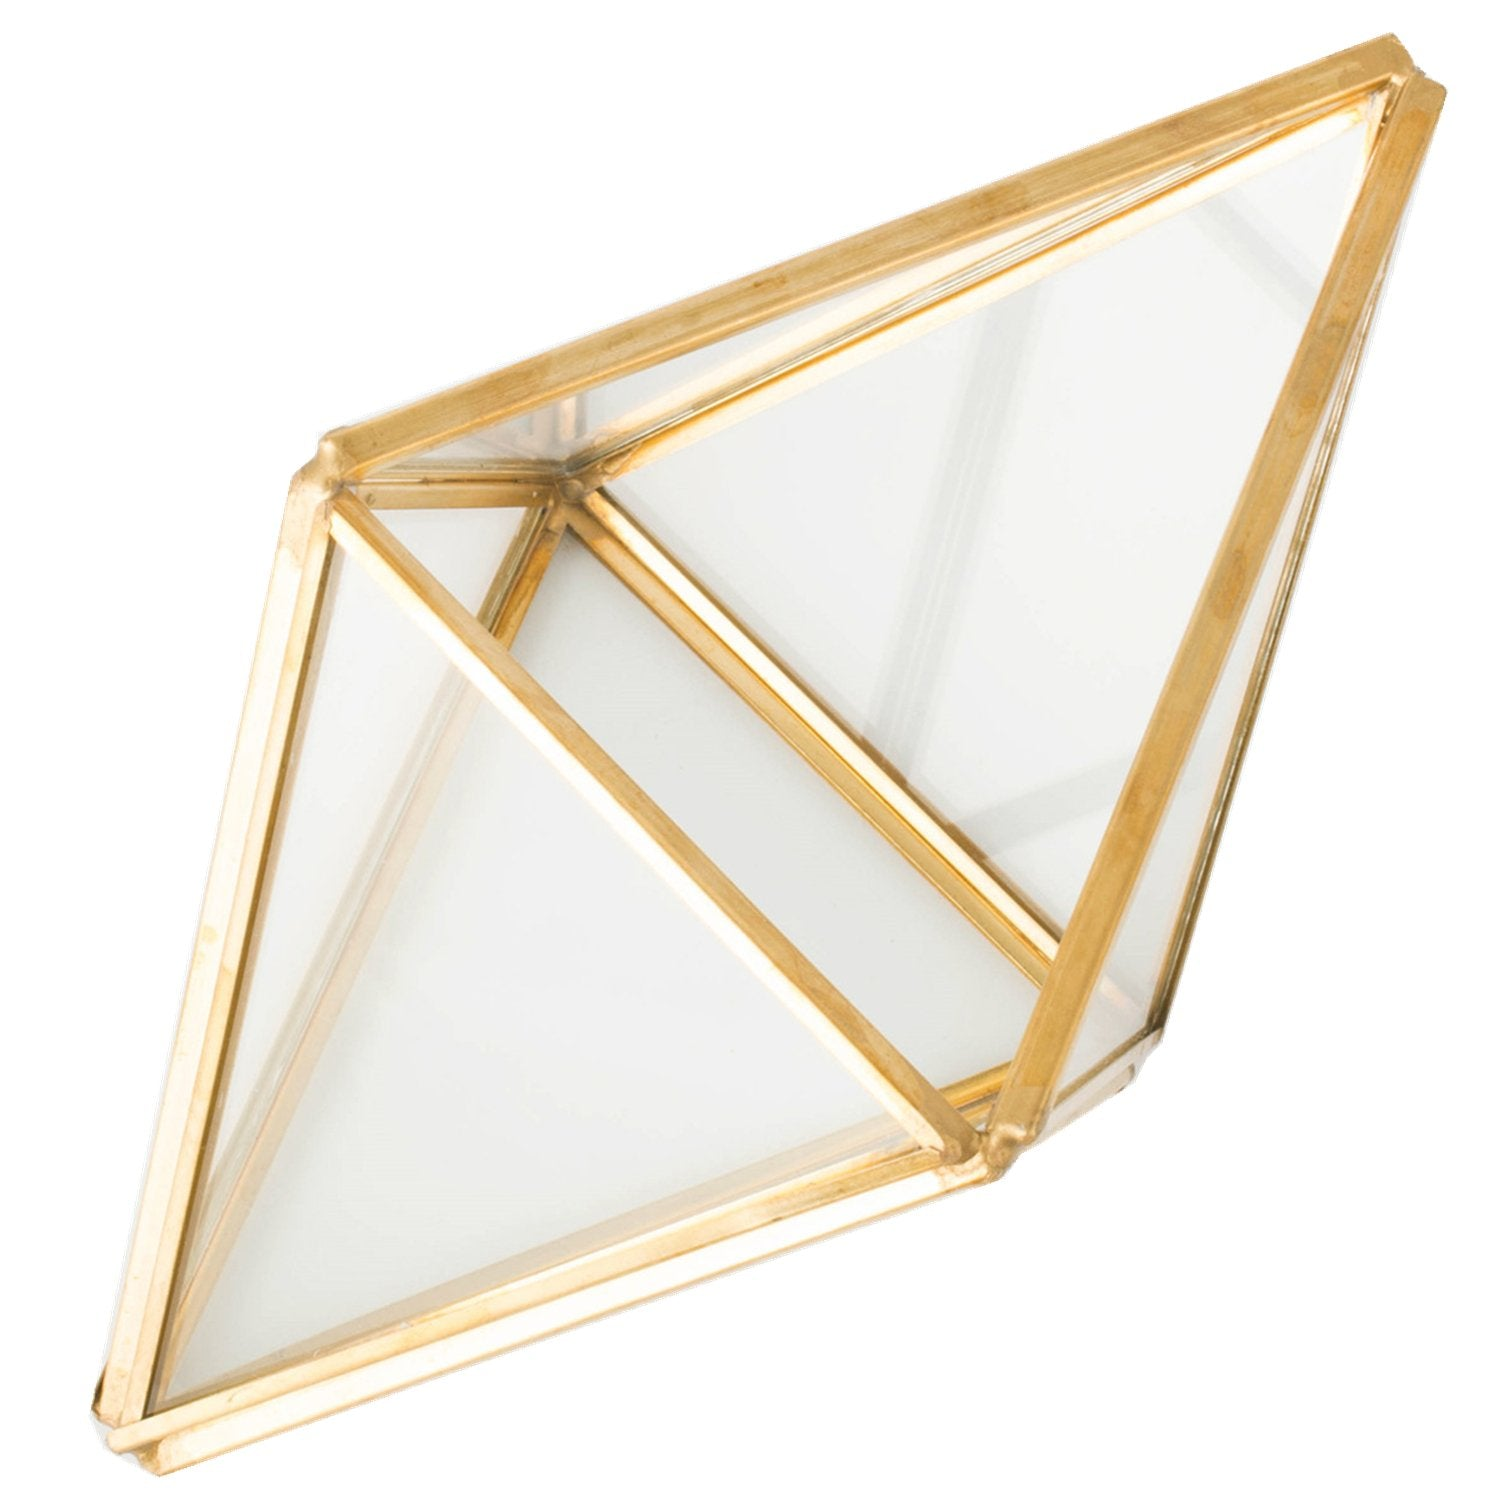 Glass Plant Terrarium Succulent Planter - Tchan Prism Geometric Tabletop Brass Glass Artificial Home Decor (gold)